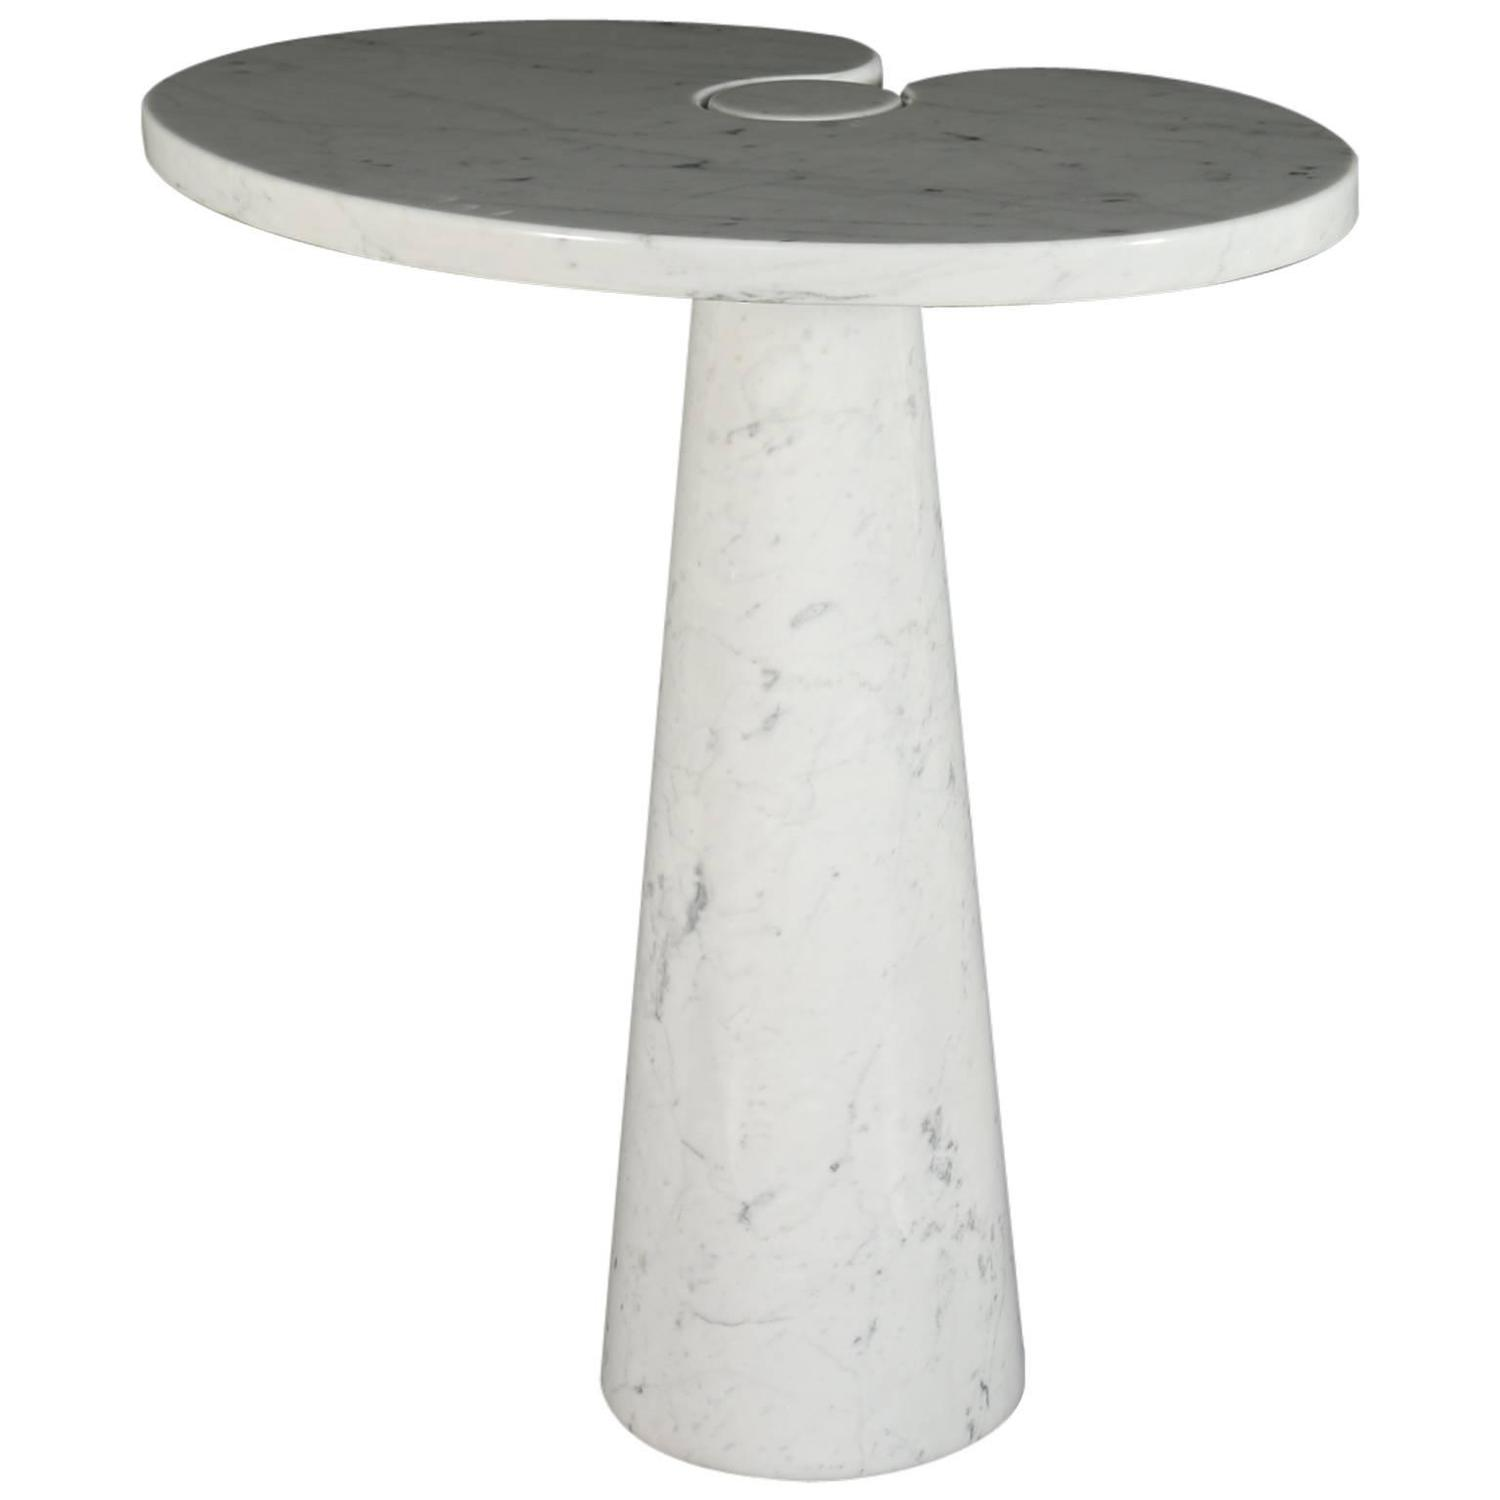 white carrara marble 39 eros 39 coffee table by angelo mangiarotti for skipper at 1stdibs. Black Bedroom Furniture Sets. Home Design Ideas